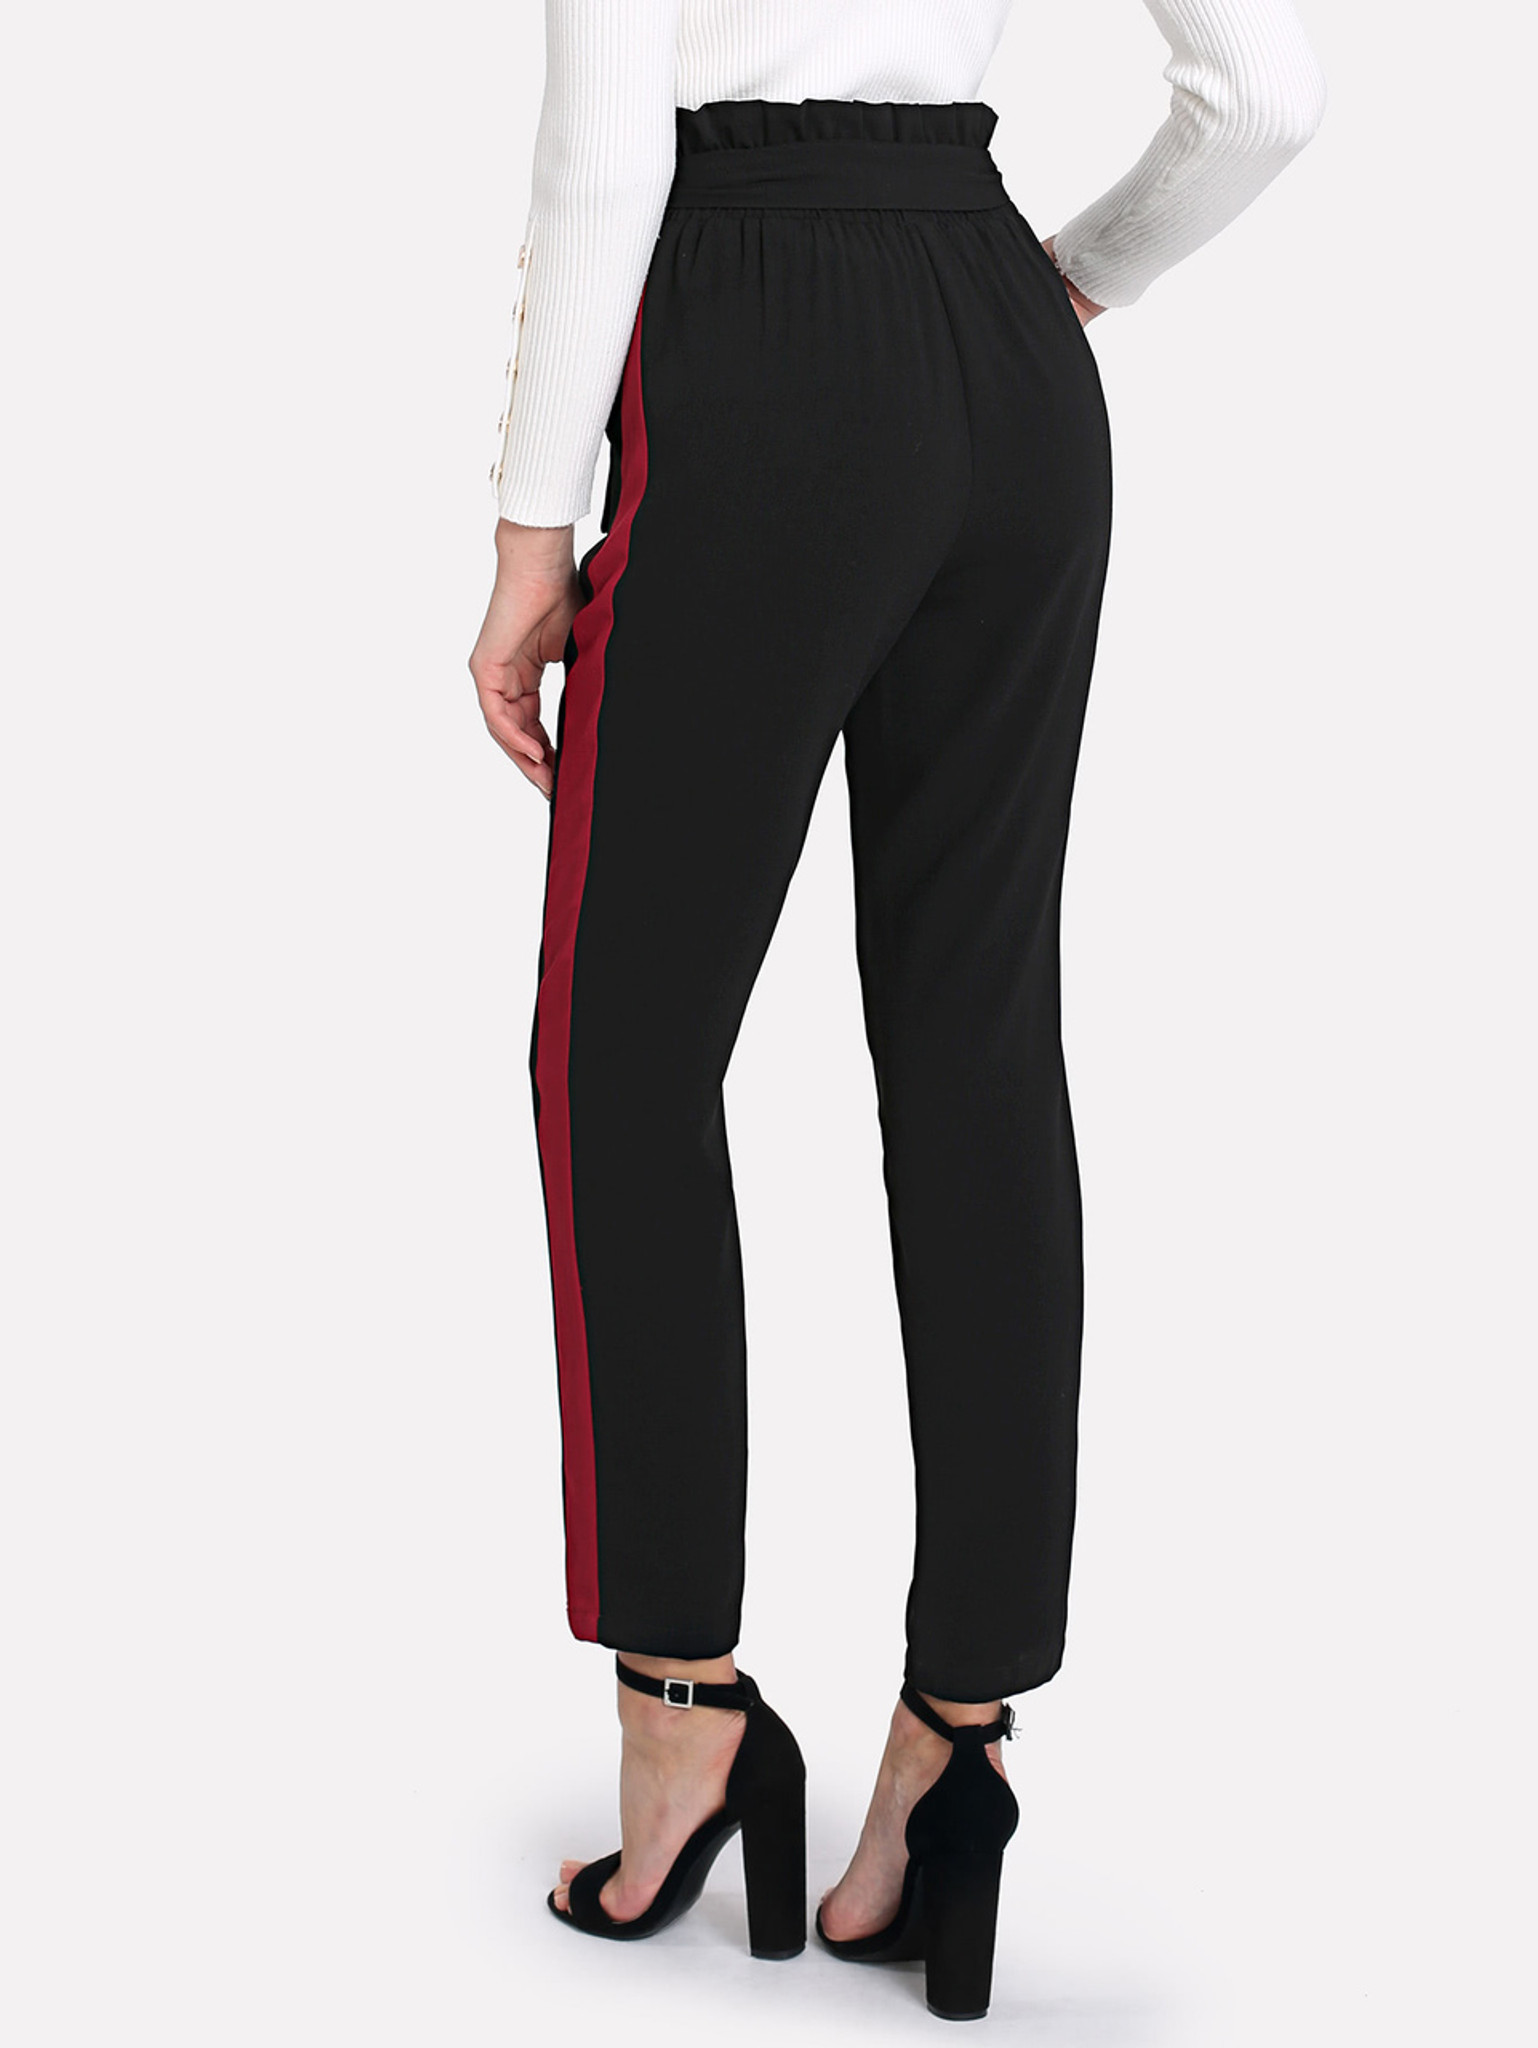 Fifth Avenue Womens TINJ Contrast Panel Georgette Pants - Black and Red